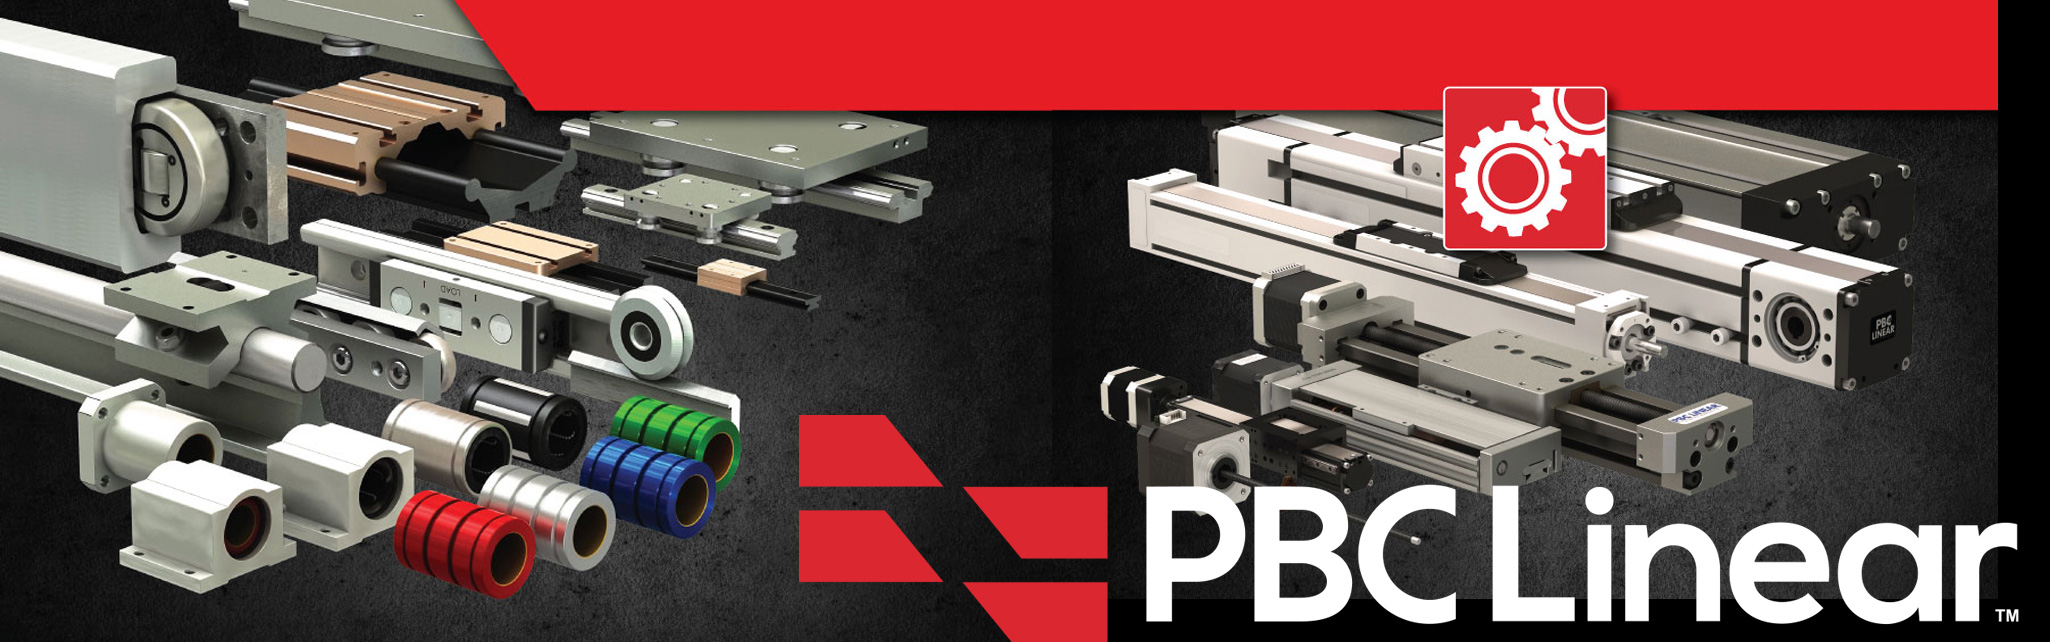 In 1983 PBC Linear was known as the Pacific Bearing Company. Today, PBC Linear of Rockford, IL, is a manufacturer of linear motion solutions.